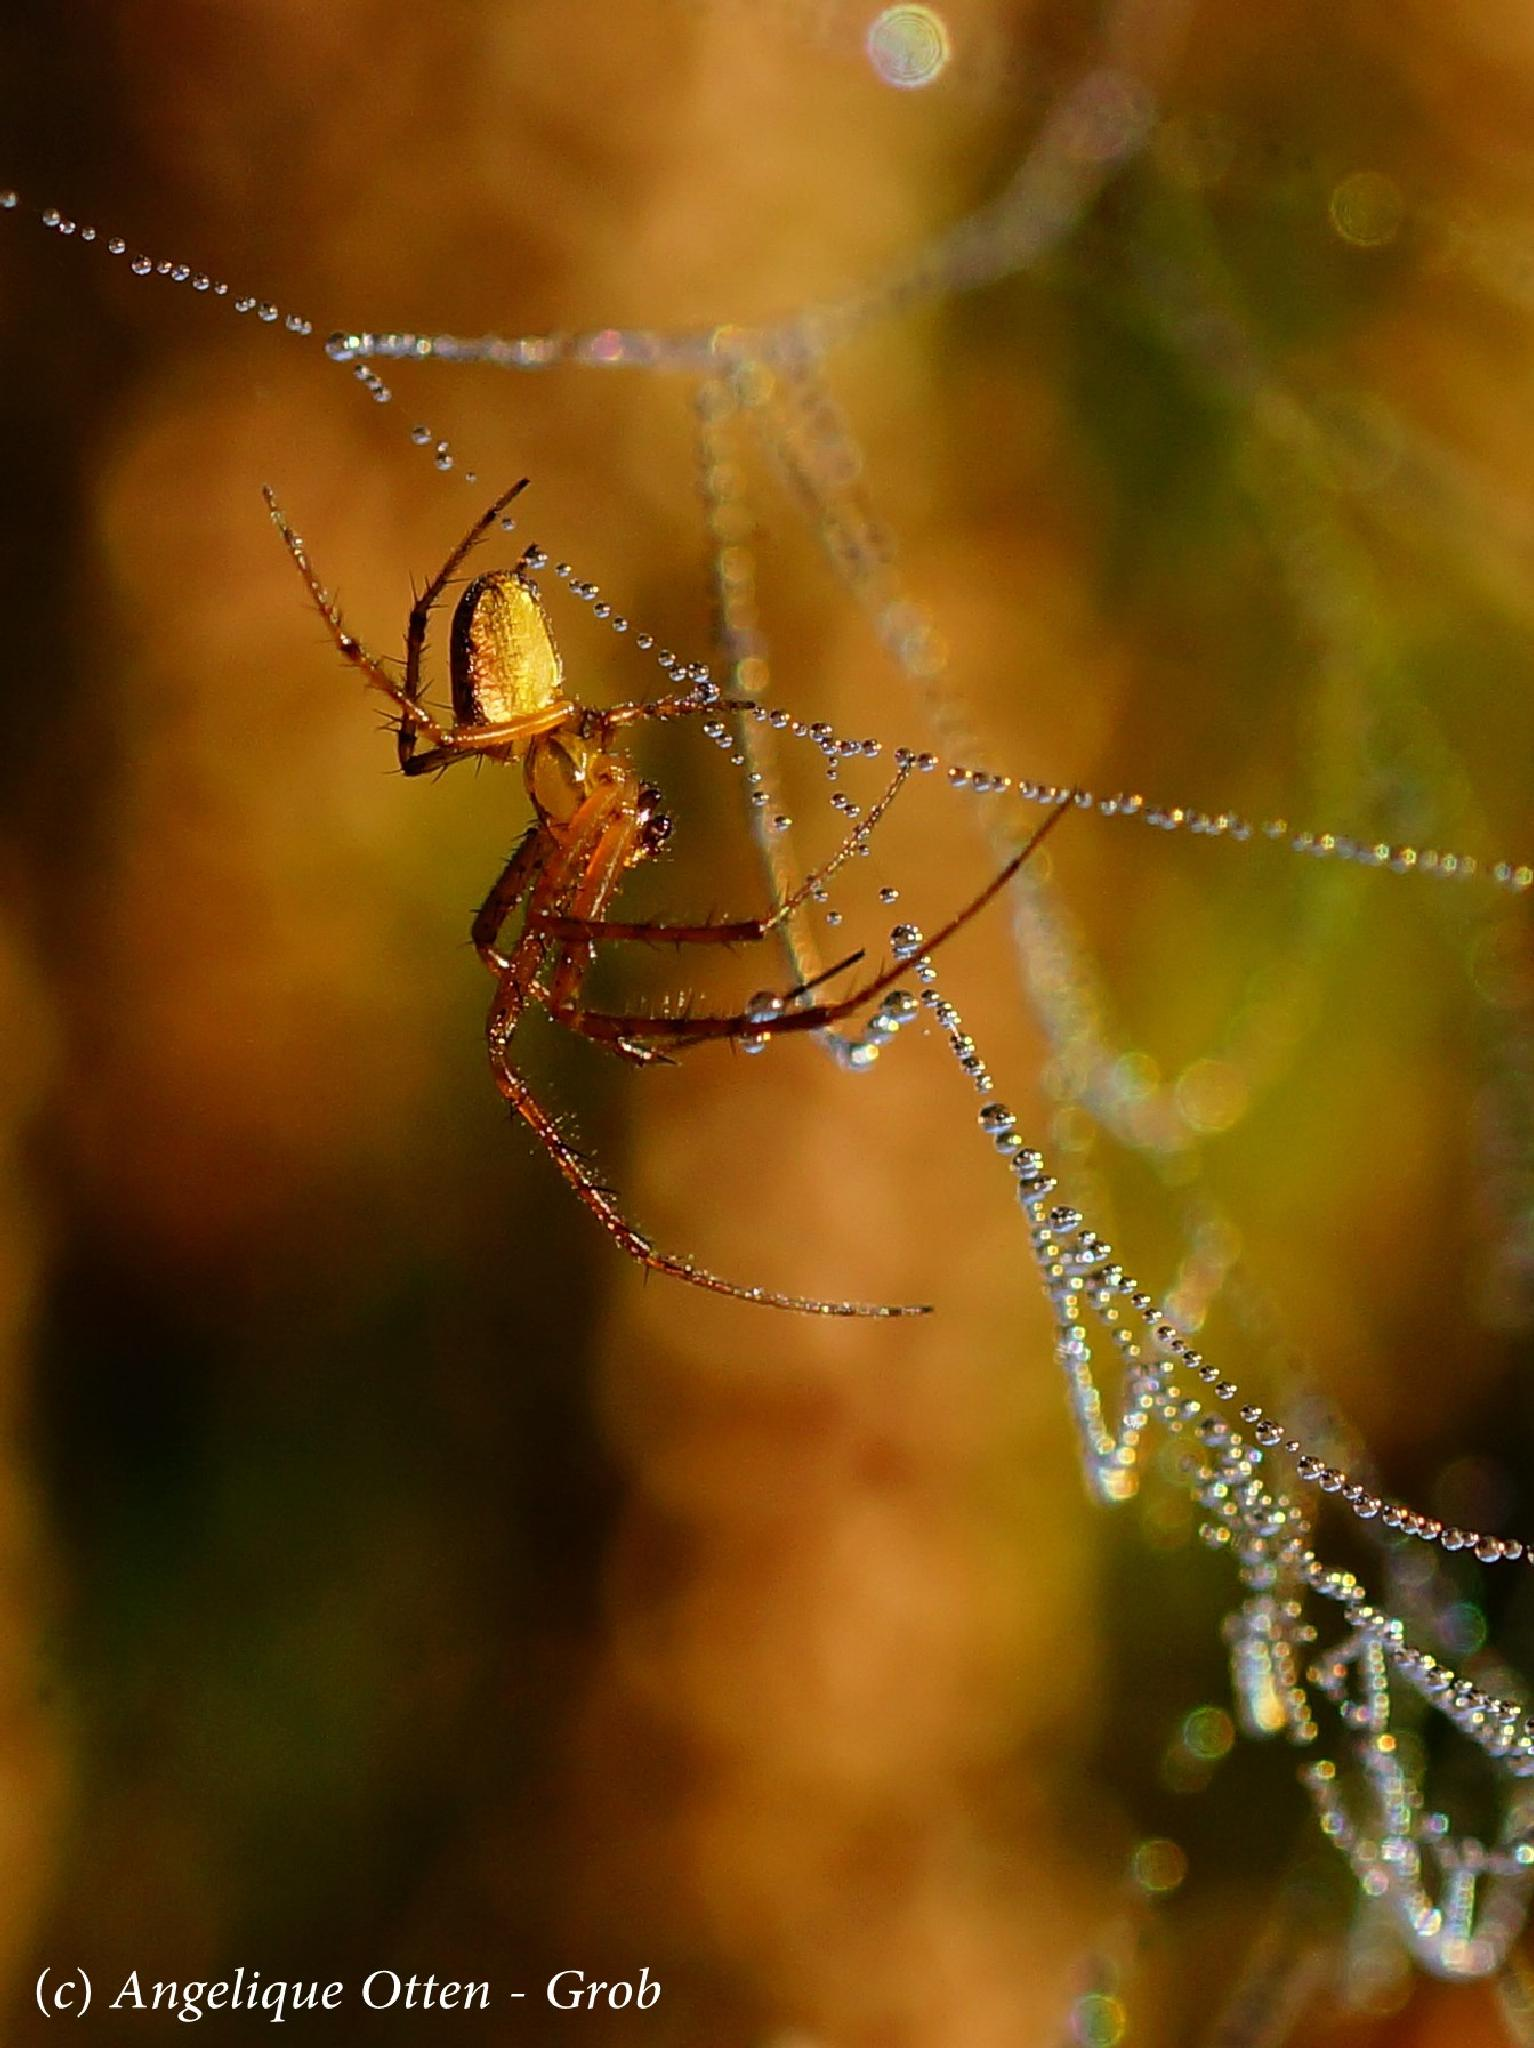 Spider in the web by Angelique Otten - Grob